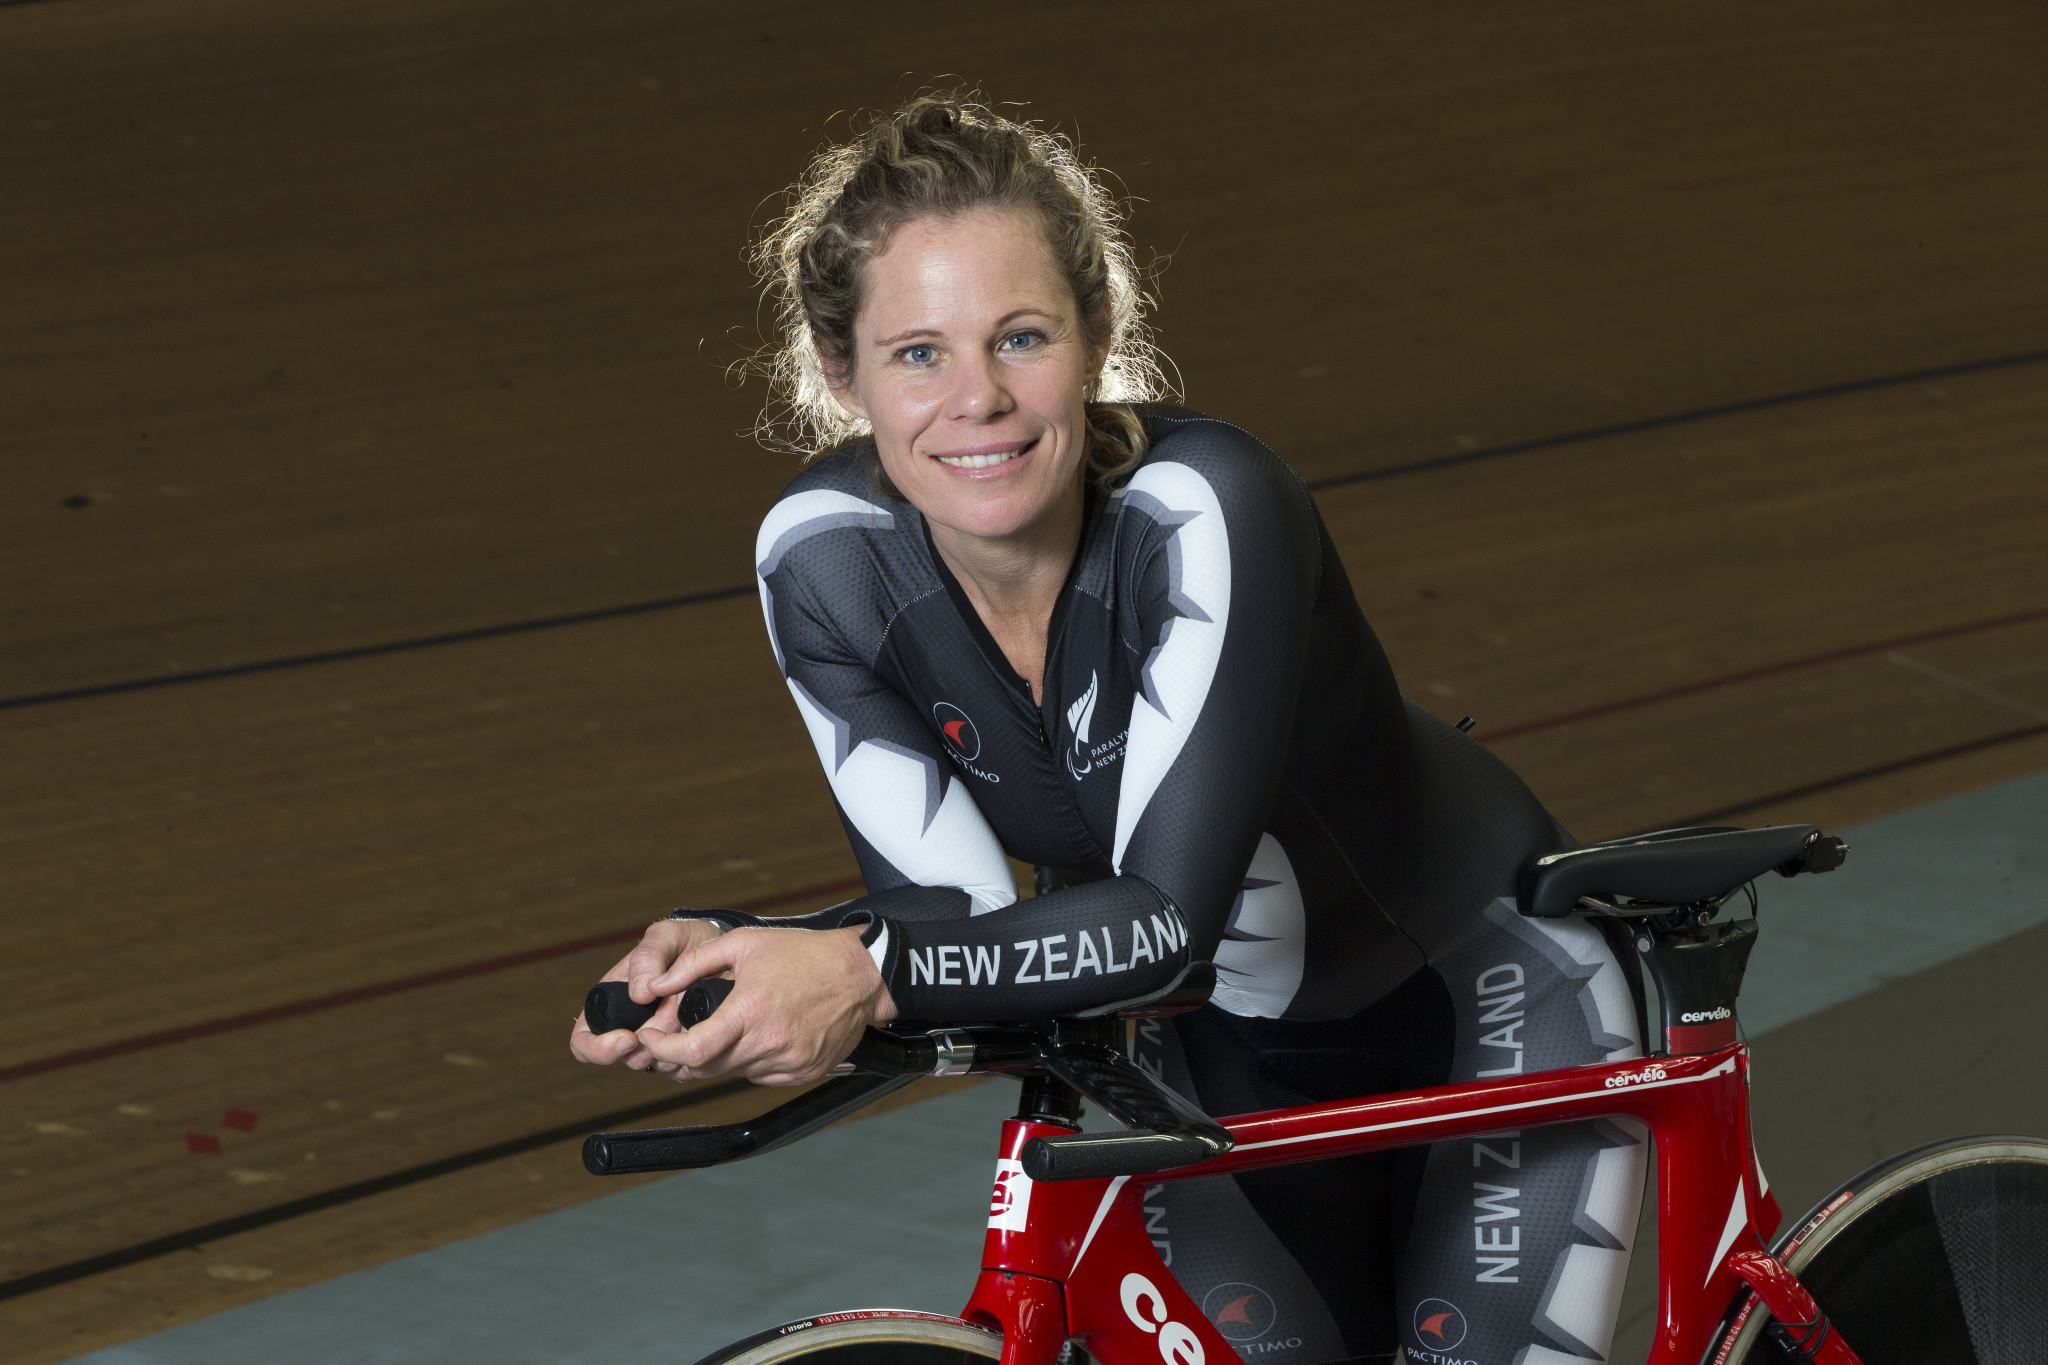 New Zealand Paralympic medallist announces retirement from cycling